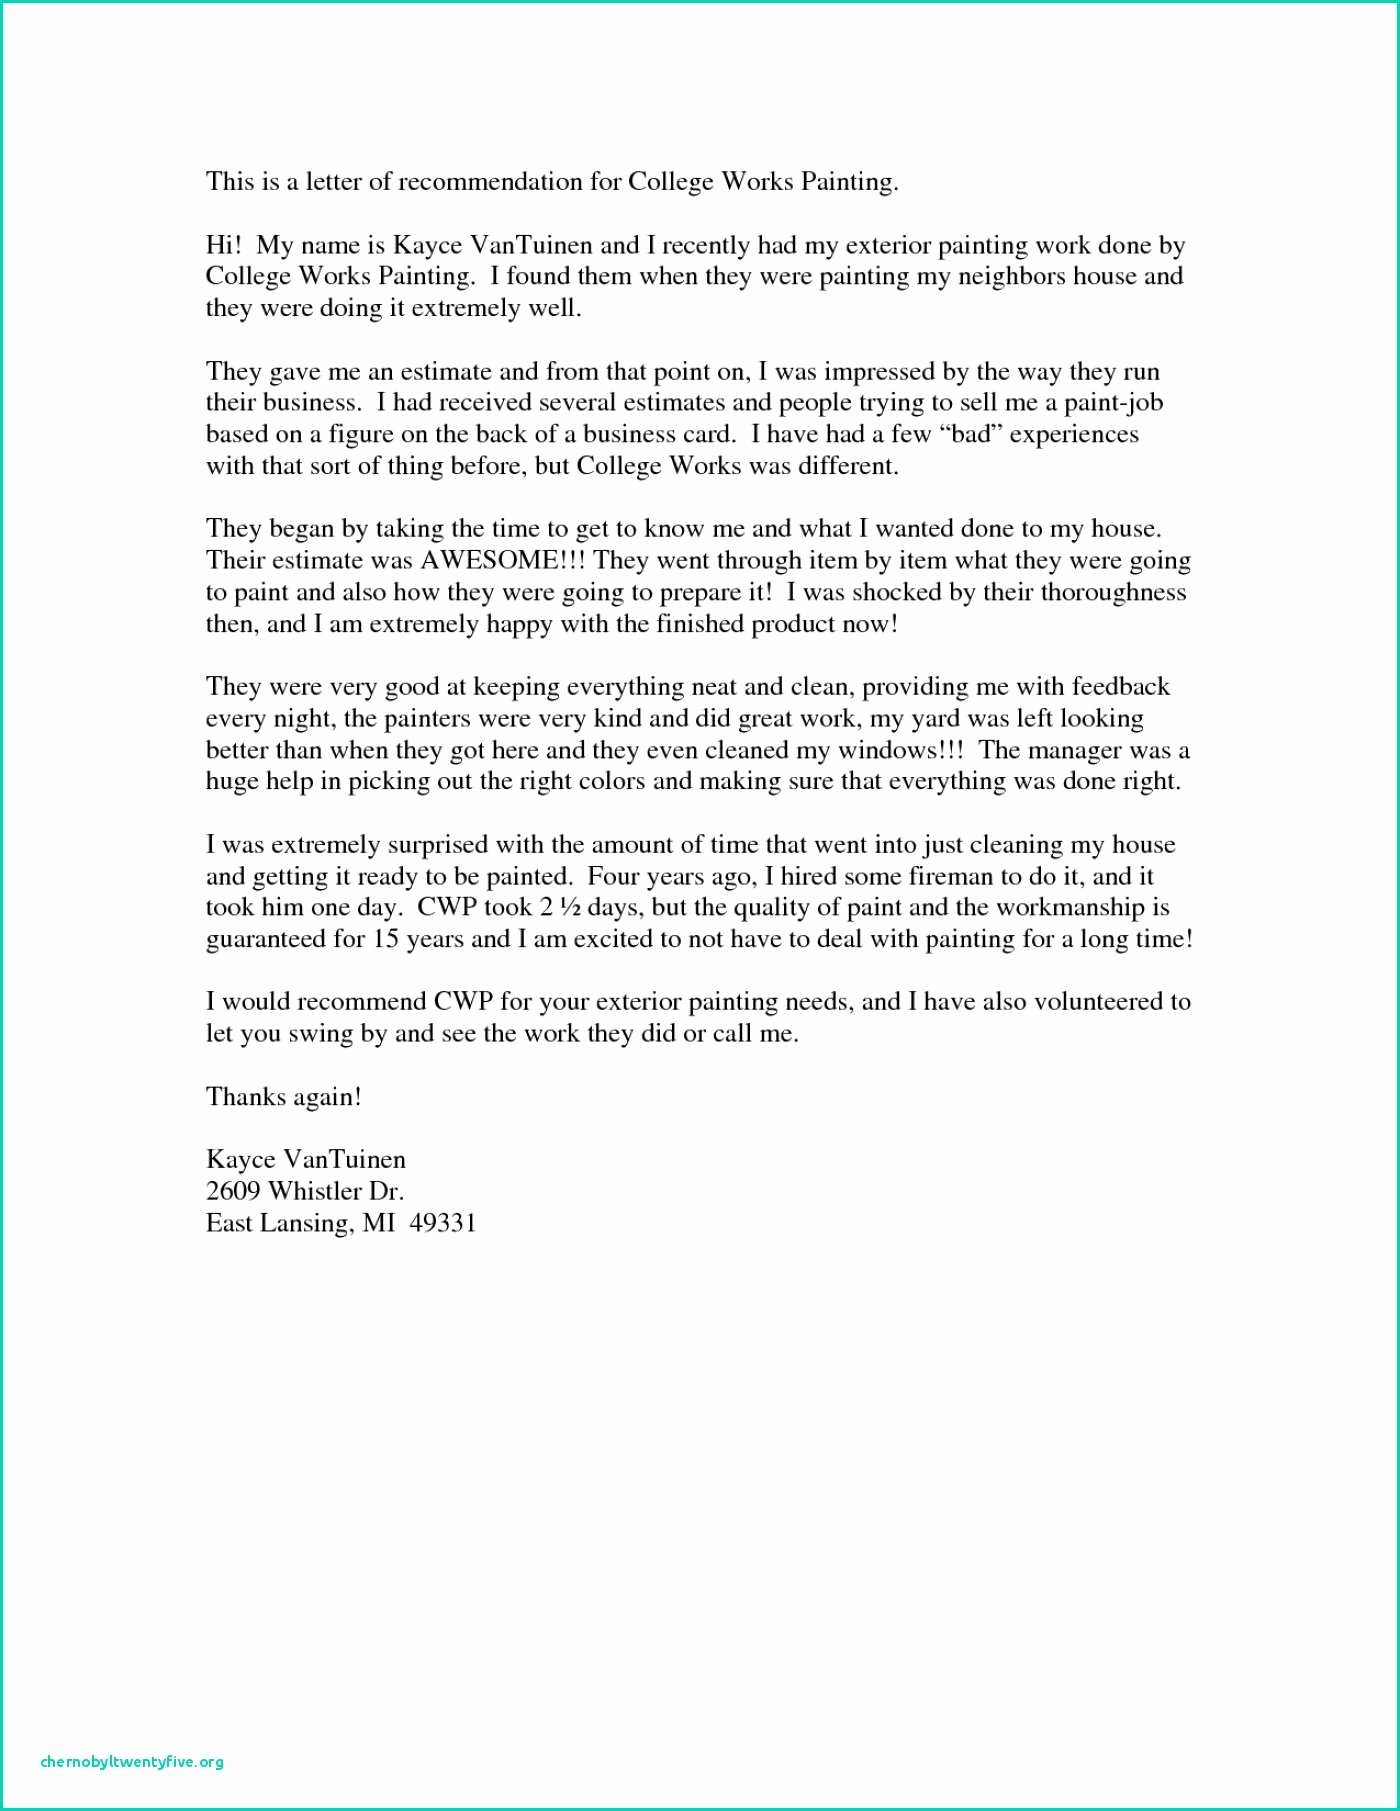 Eb1 Recommendation Letter Sample New Green Card Re Mendation Letter Sample Eb1 Green Card Re